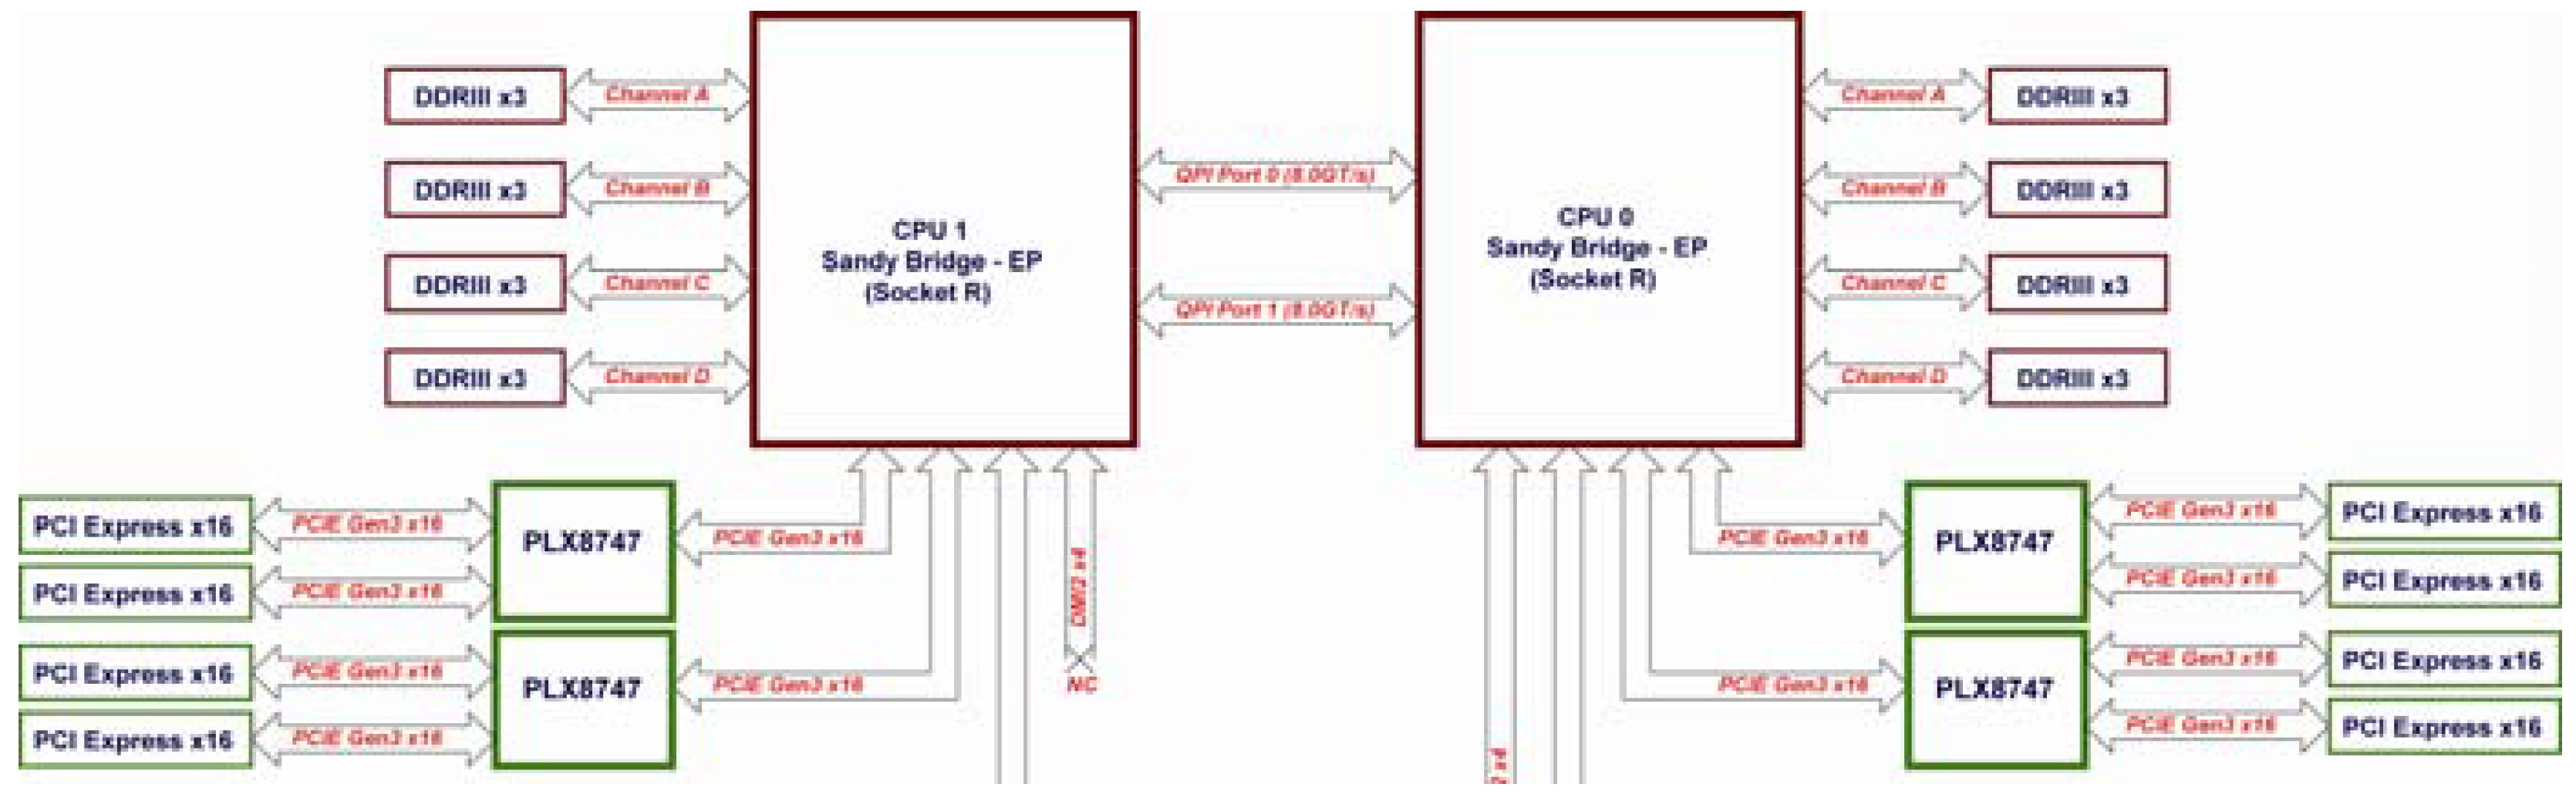 Common Pci Express Myths For Gpu Computing Users Microway Help Requested Changing Double Switch To Two Singles Electrical Octoputer E Block Diagram